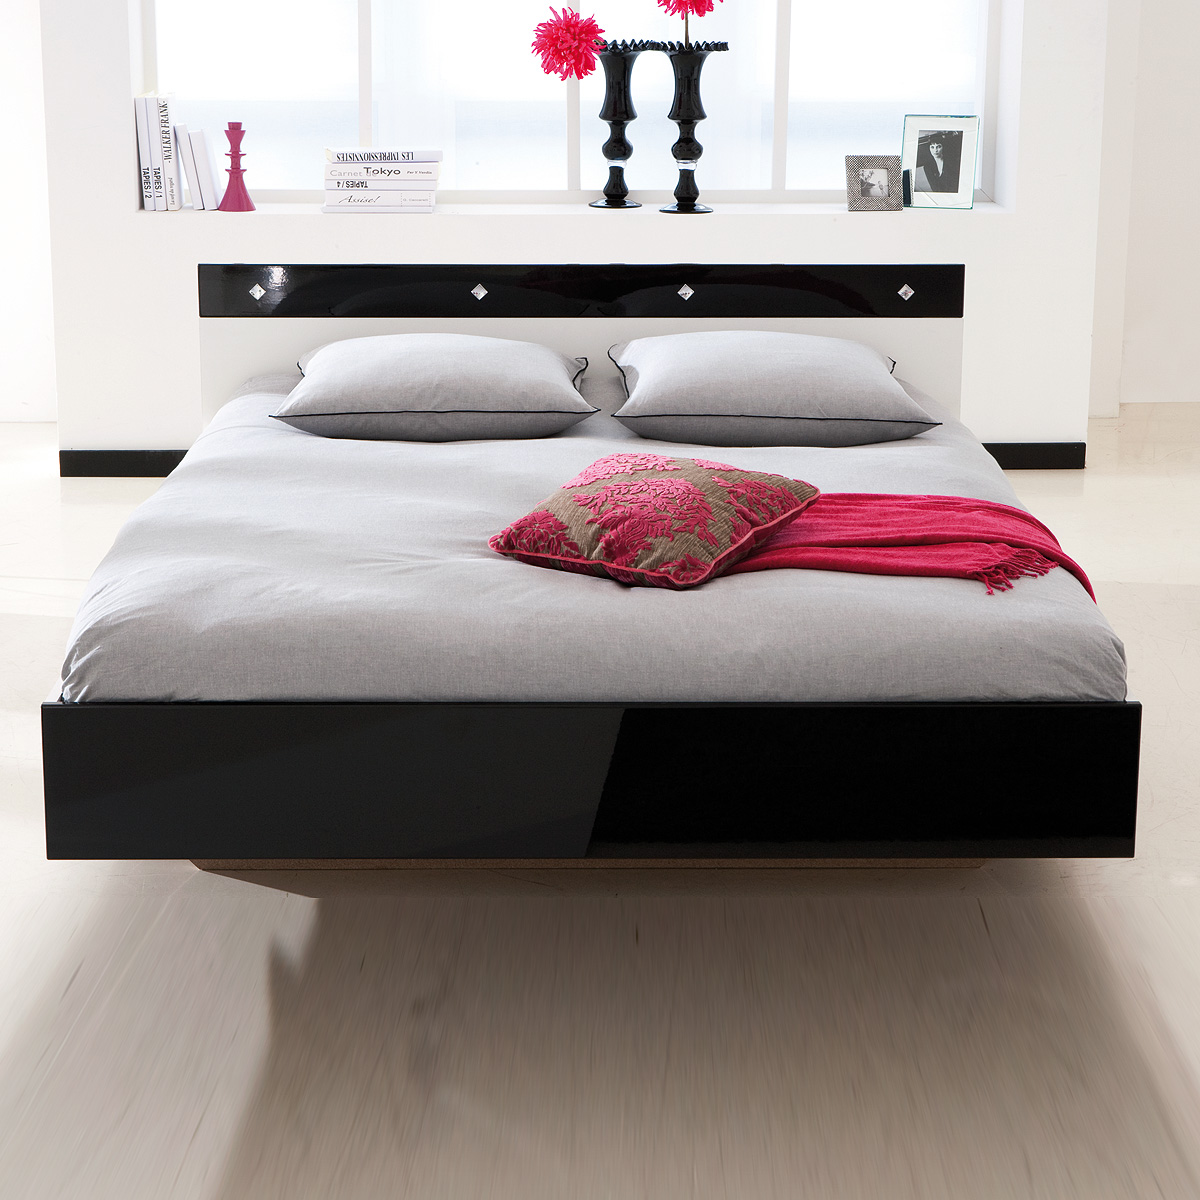 bett strass schlafzimmerbett bettgestell in wei und schwarz lack 140x190 ebay. Black Bedroom Furniture Sets. Home Design Ideas